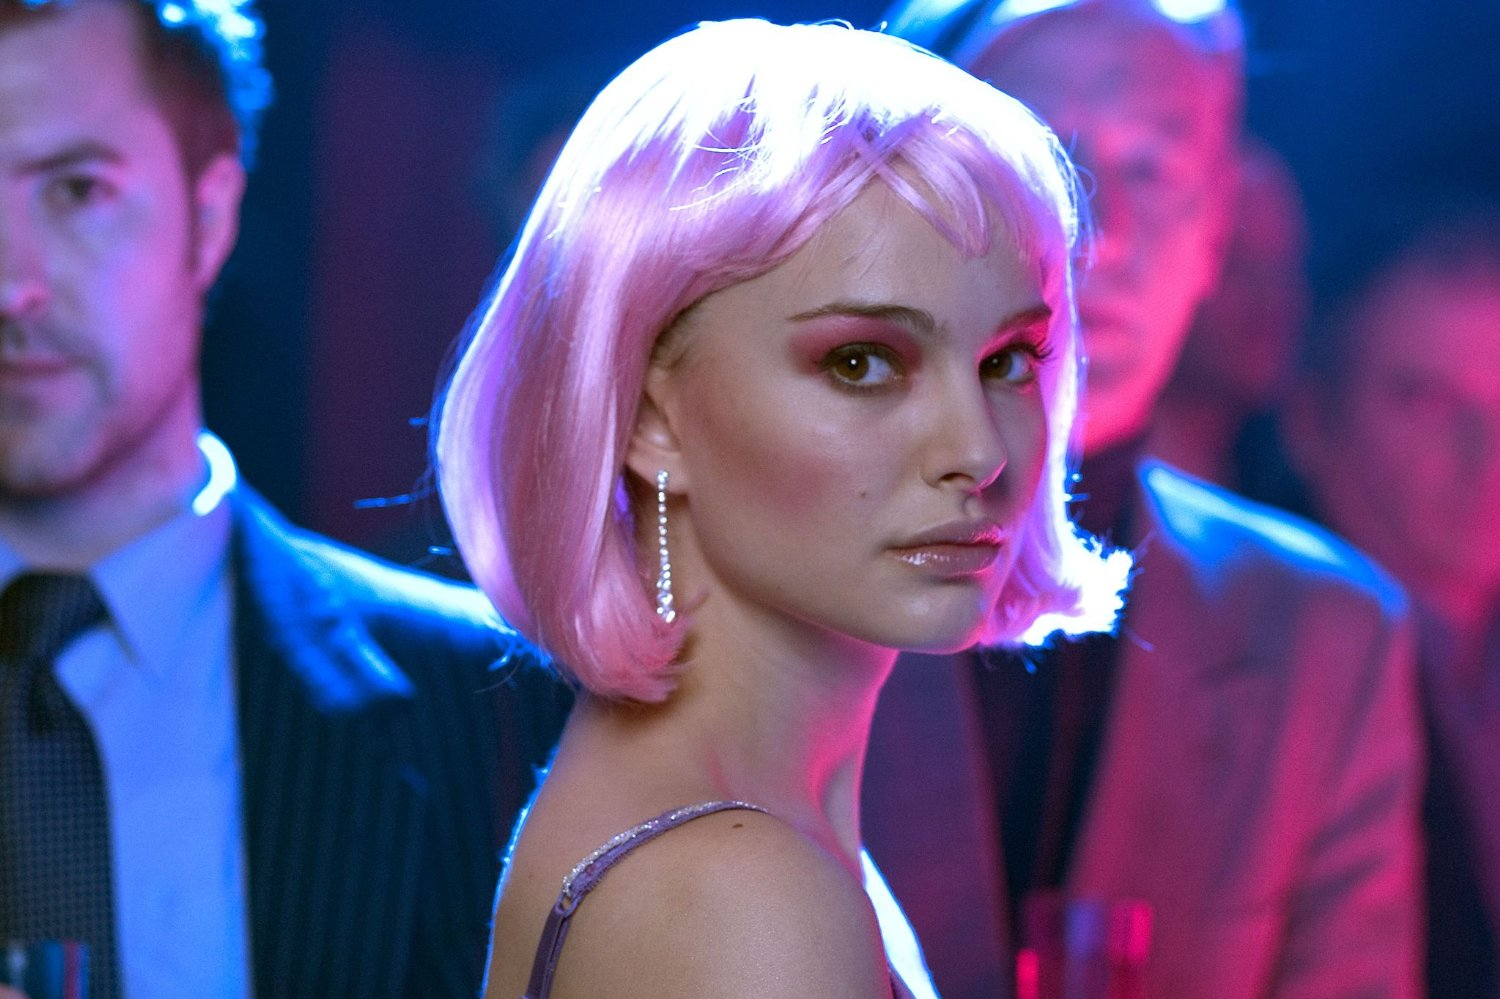 Natalie Portman in Closer